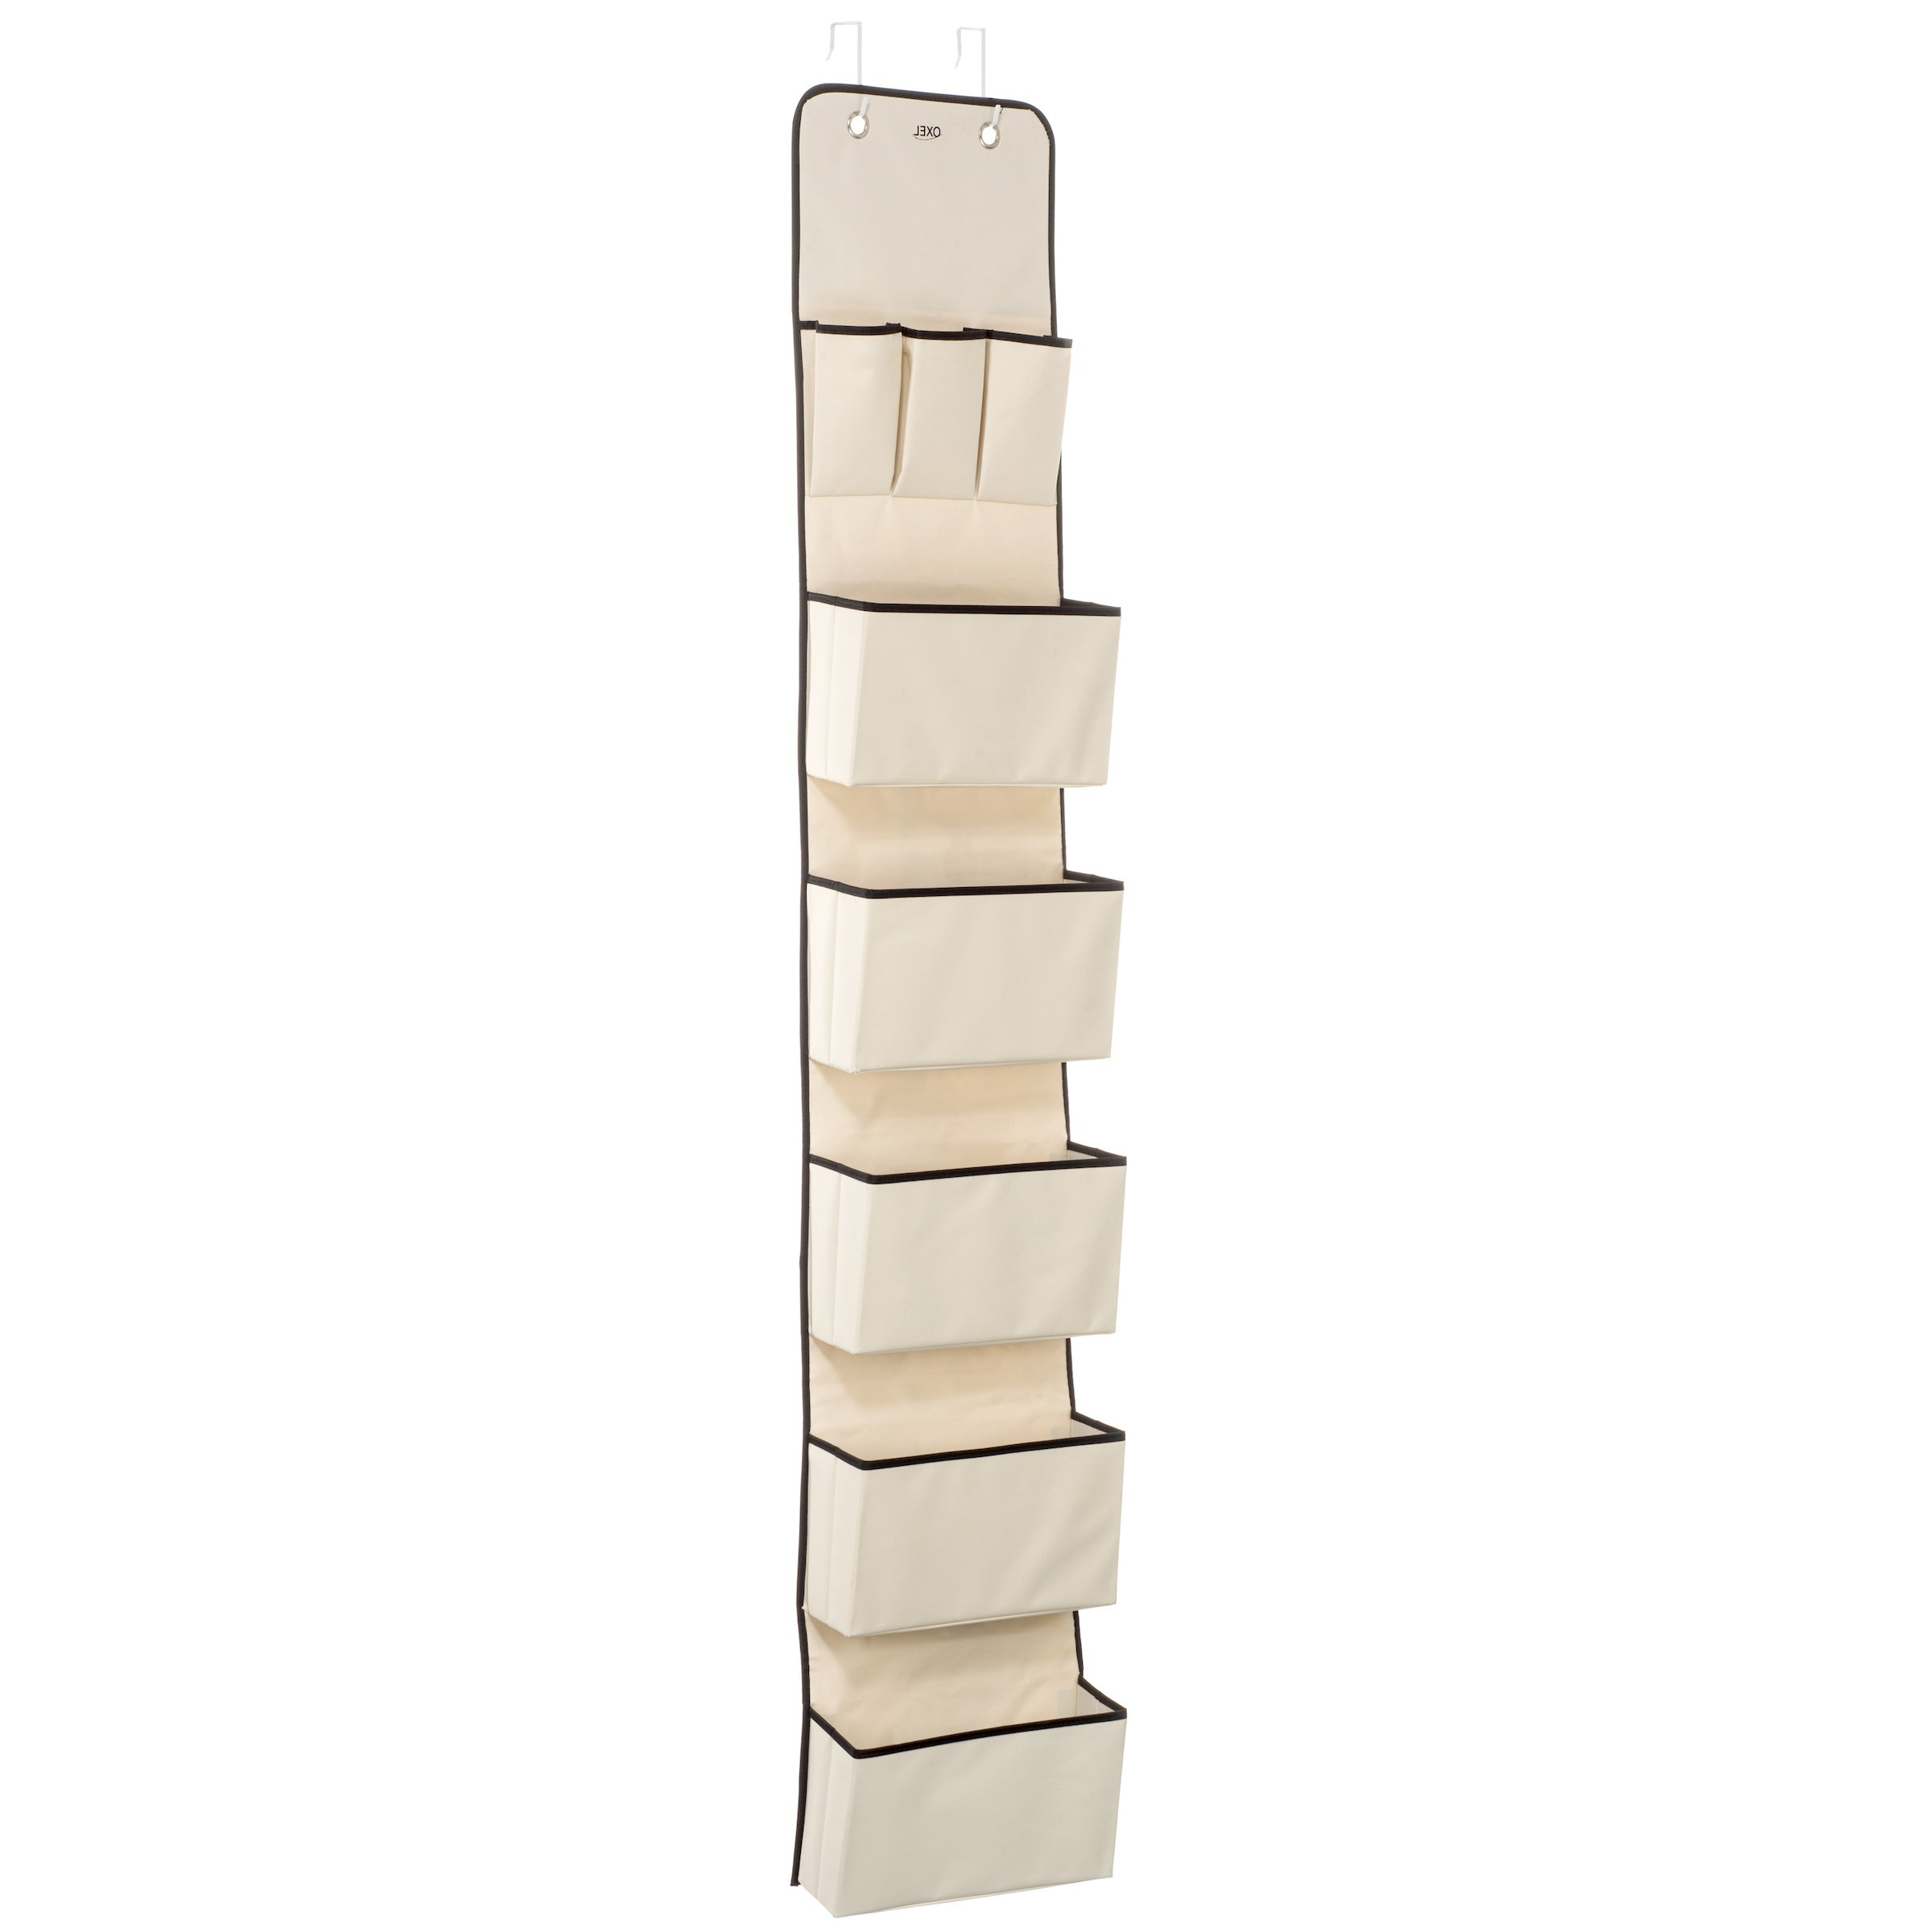 Amazoncom Over The Door Hanging Wall Organizer With 8 Pockets